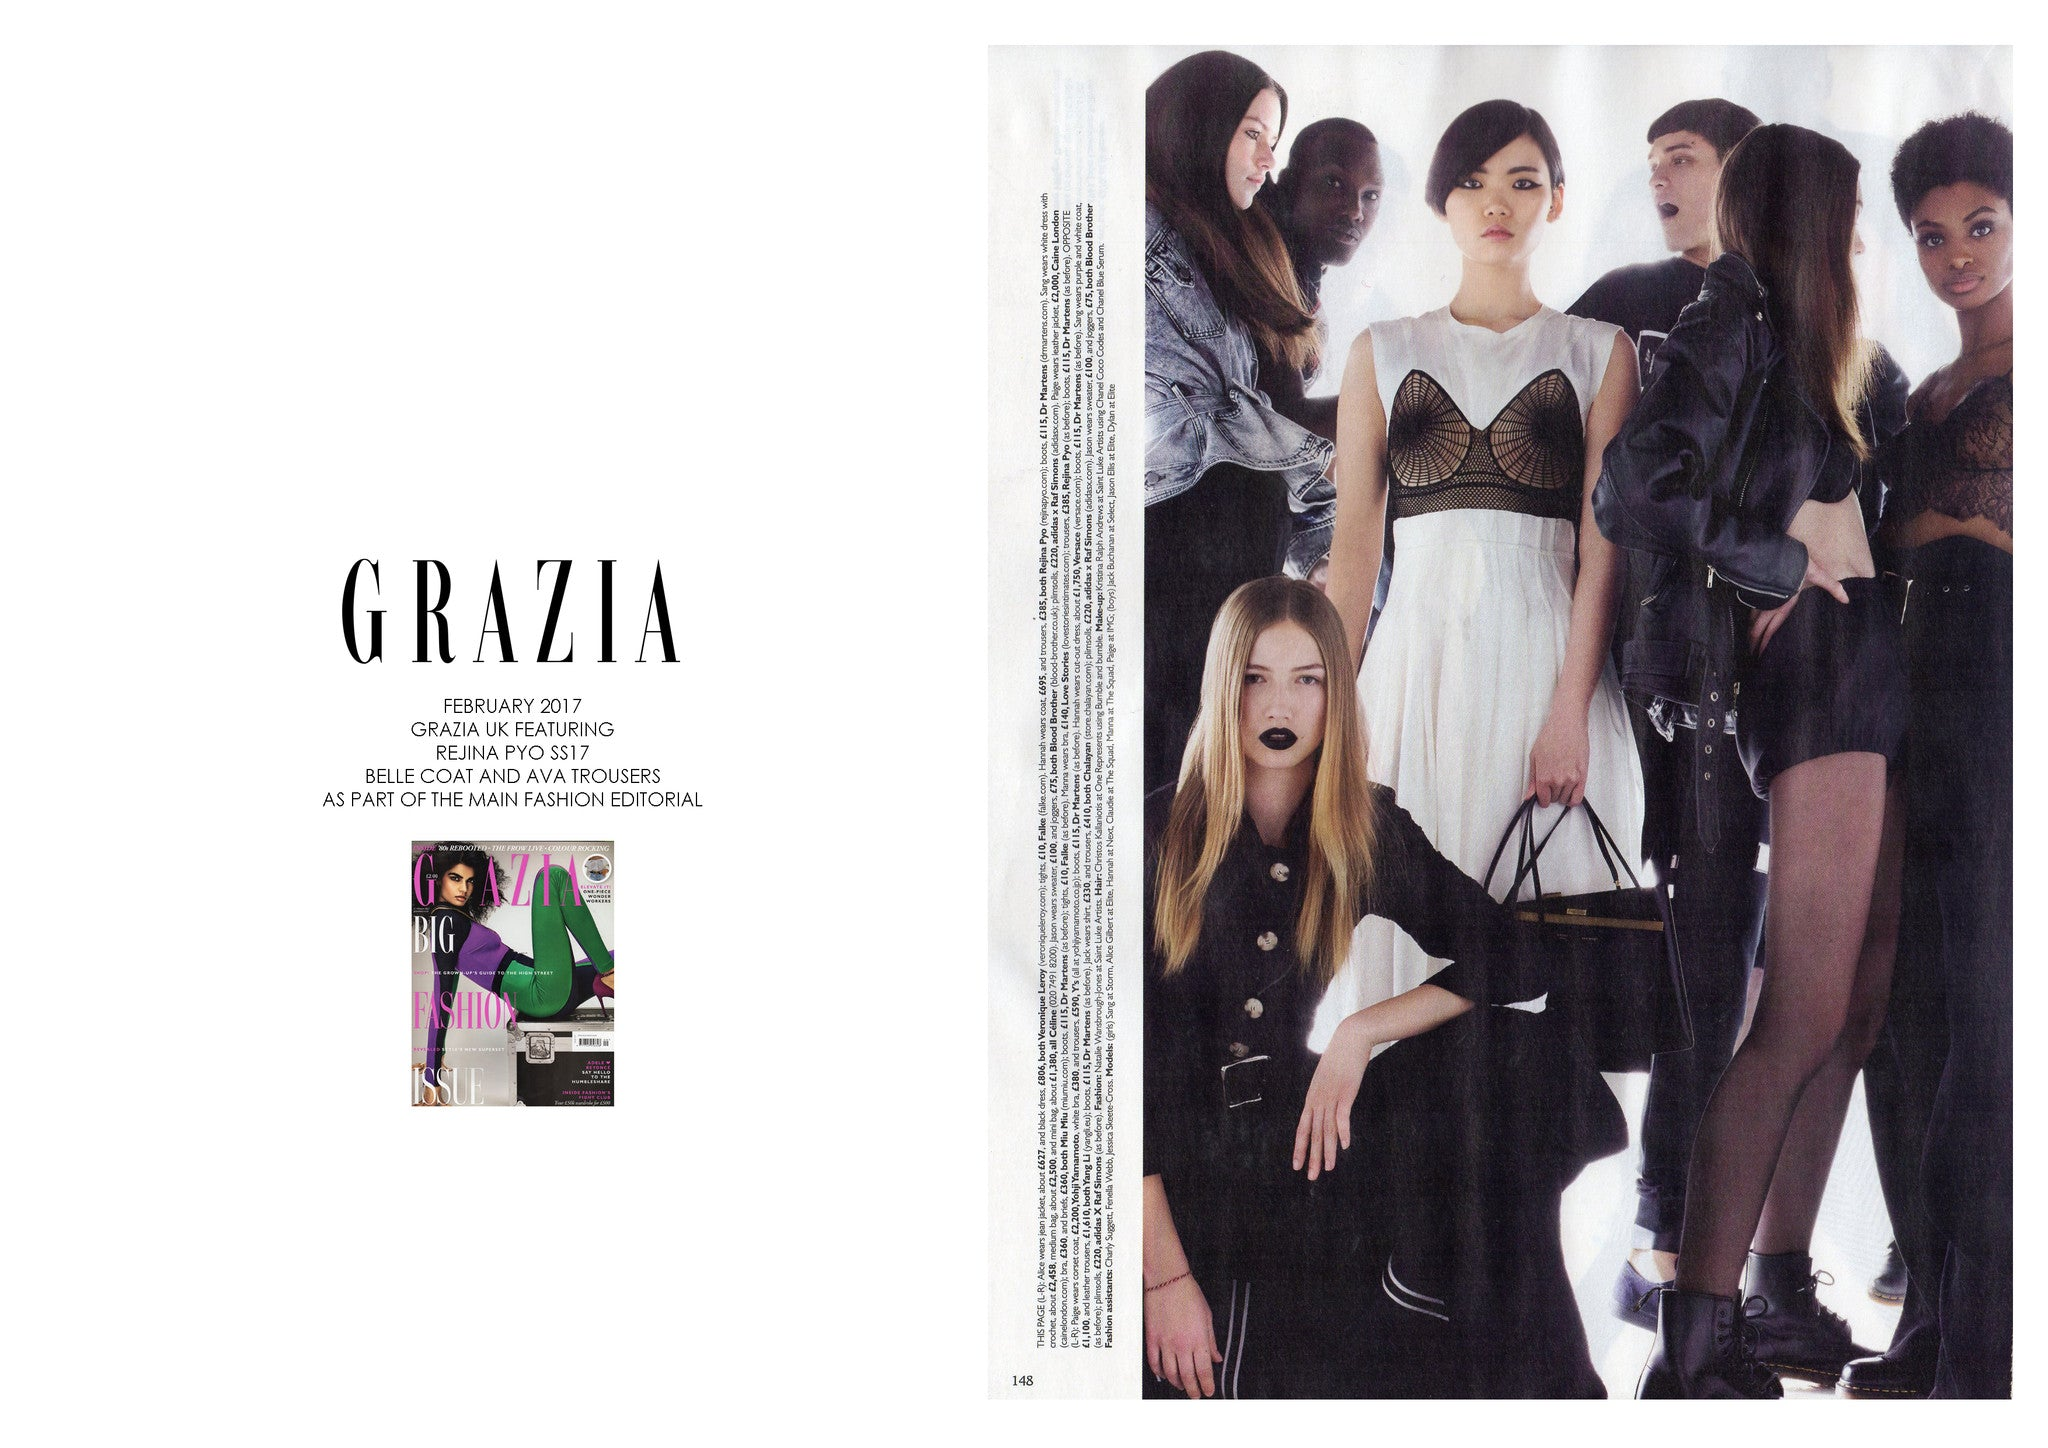 GRAZIA UK: FEATURING REJINA PYO SS17 COLLECTION AS PART OF A FASHION EDITORIAL